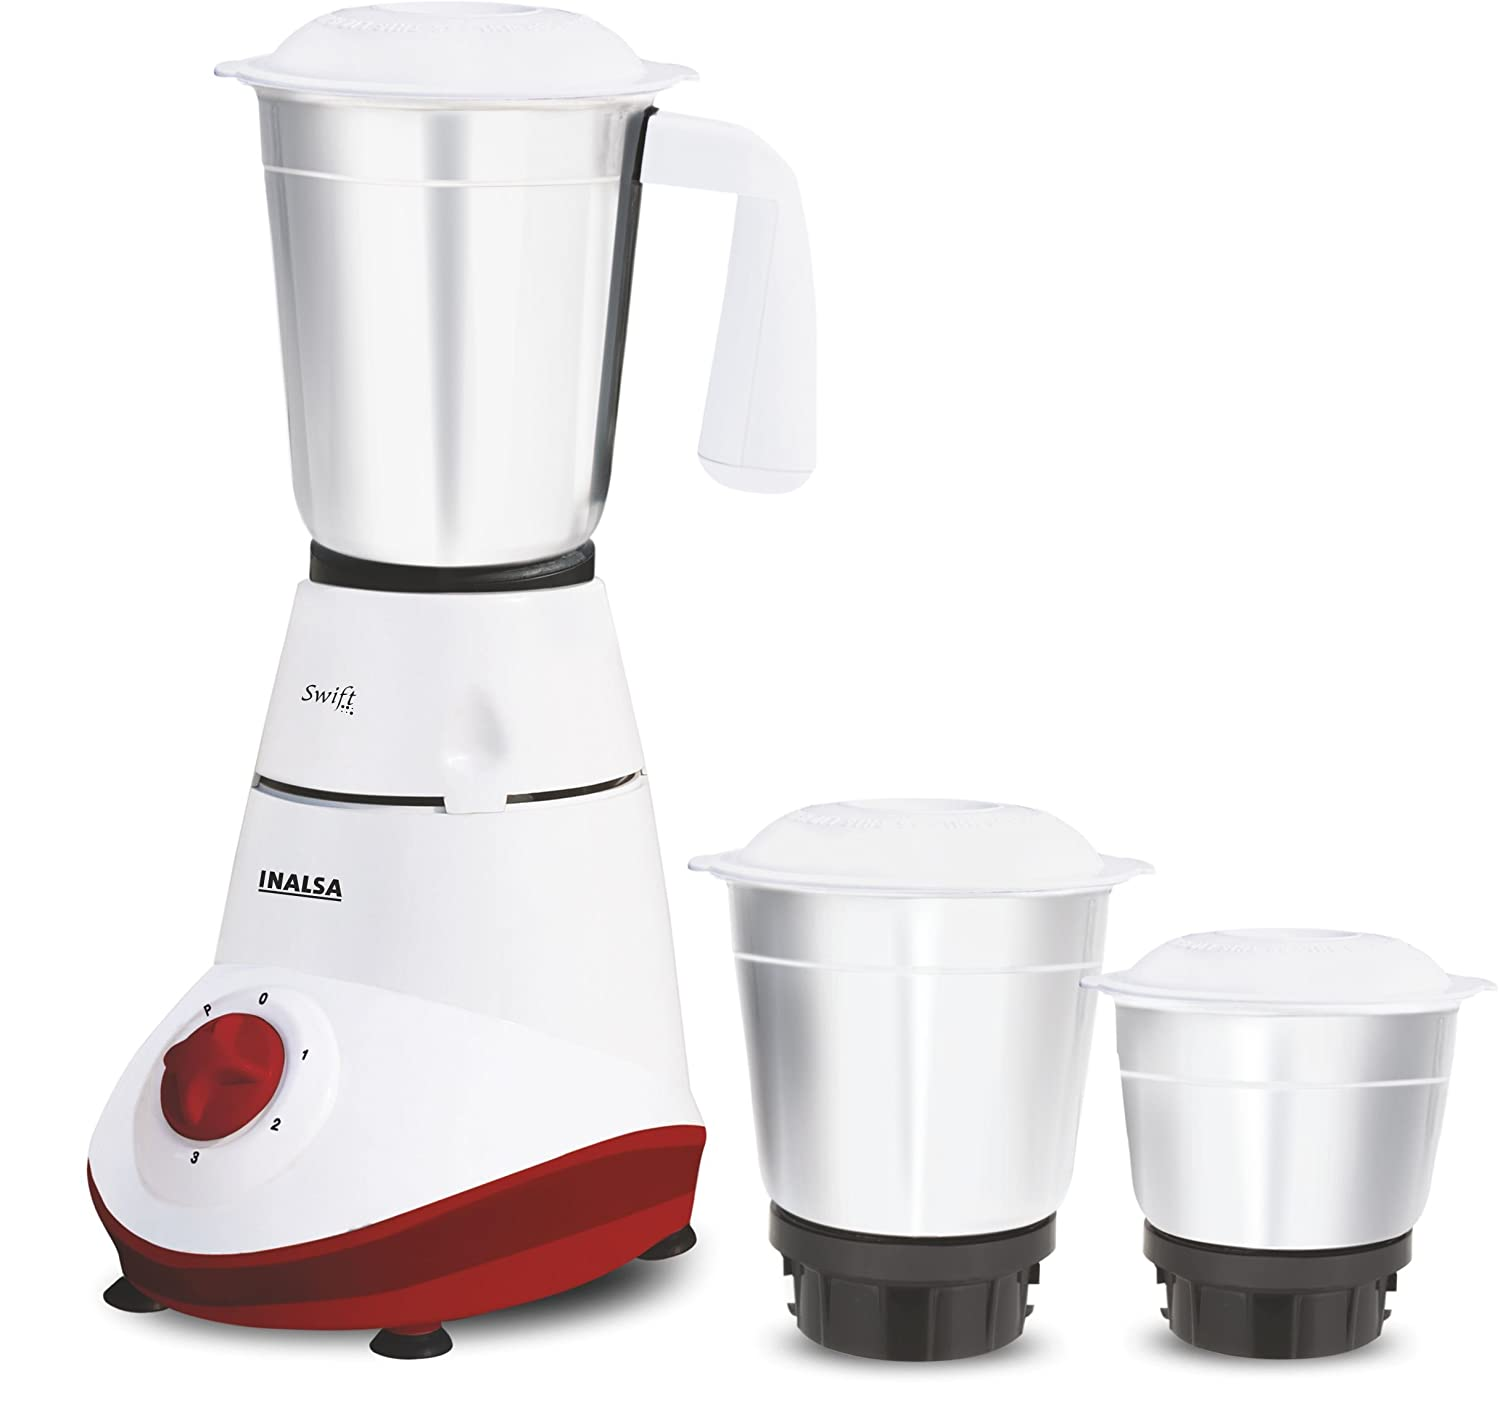 Inalsa Swift 500-Watt Mixer Grinder with 3 Jars (White and Red)